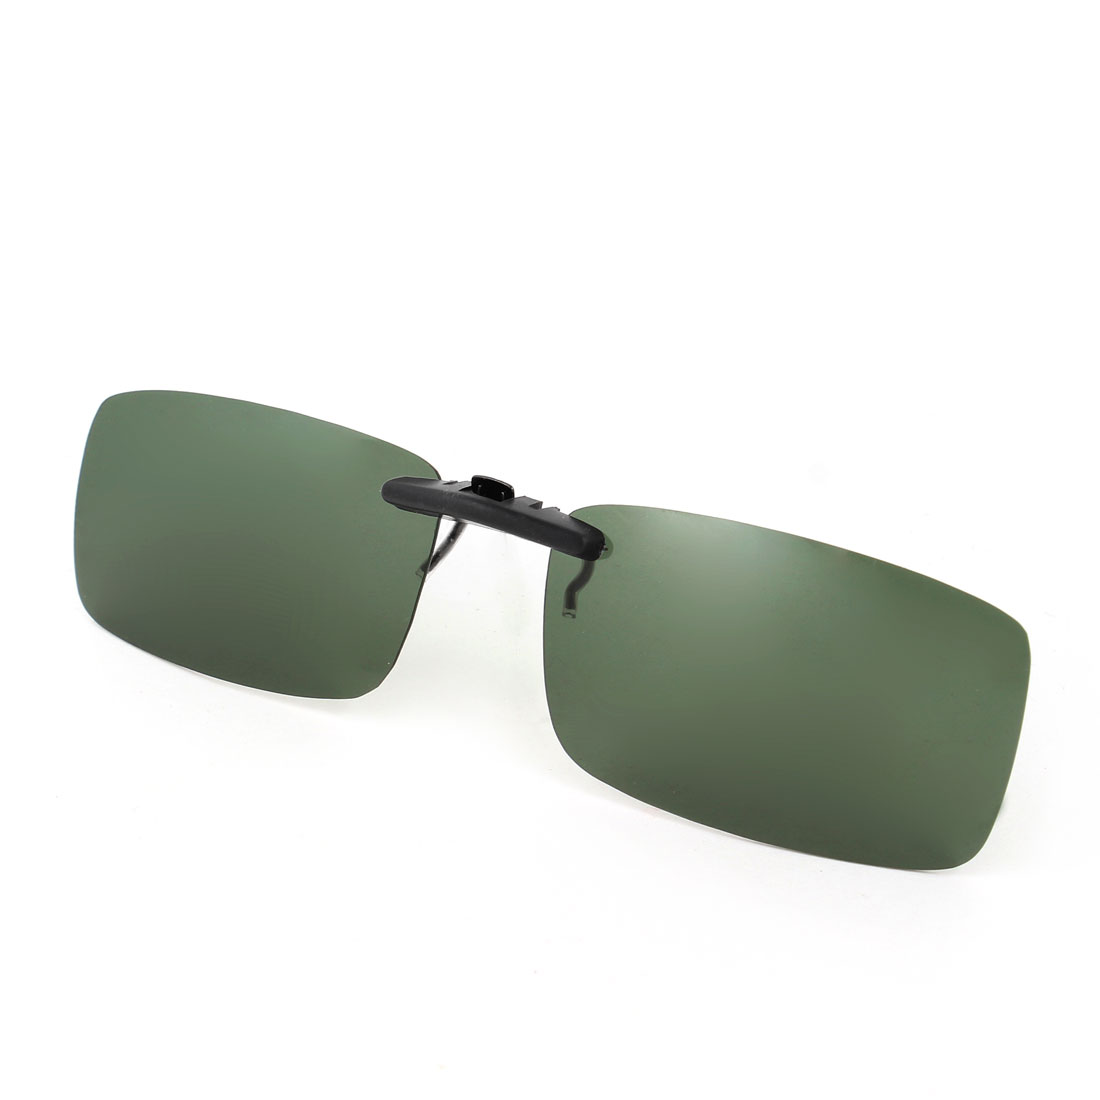 Ultraviolet Ray Protect Clip on Polarized Sunglasses Army Green w Case